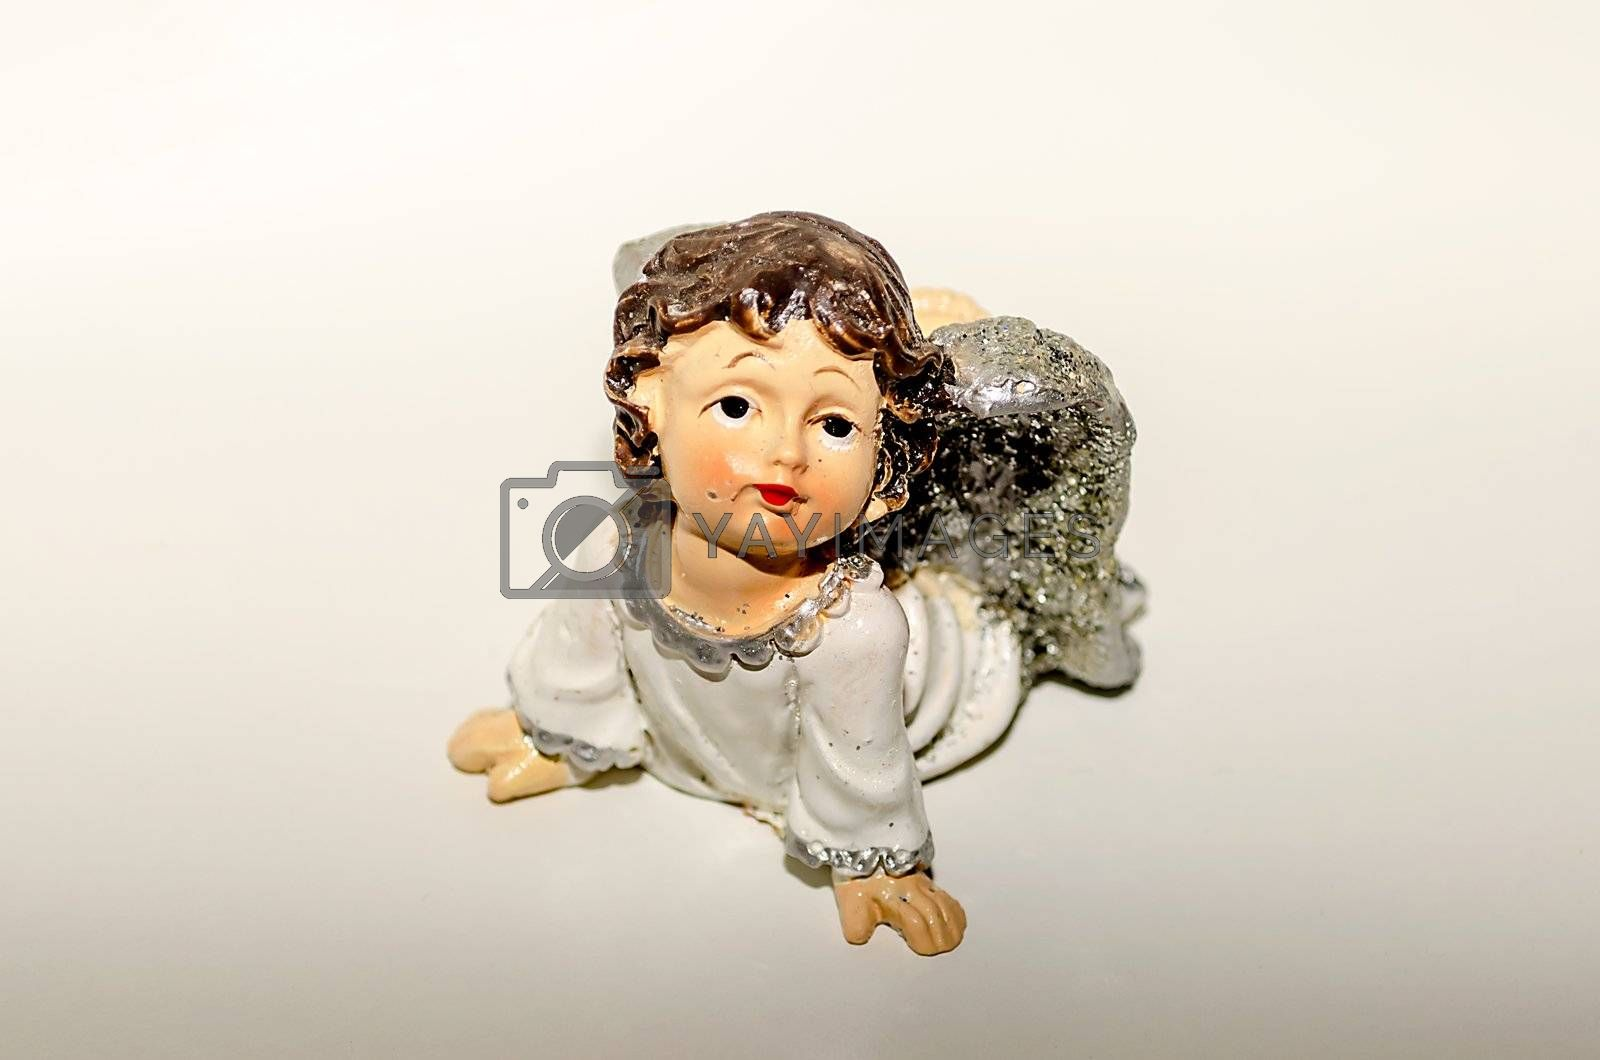 Ceramic Statuette of an Inspired Cute Angel, isolated on white